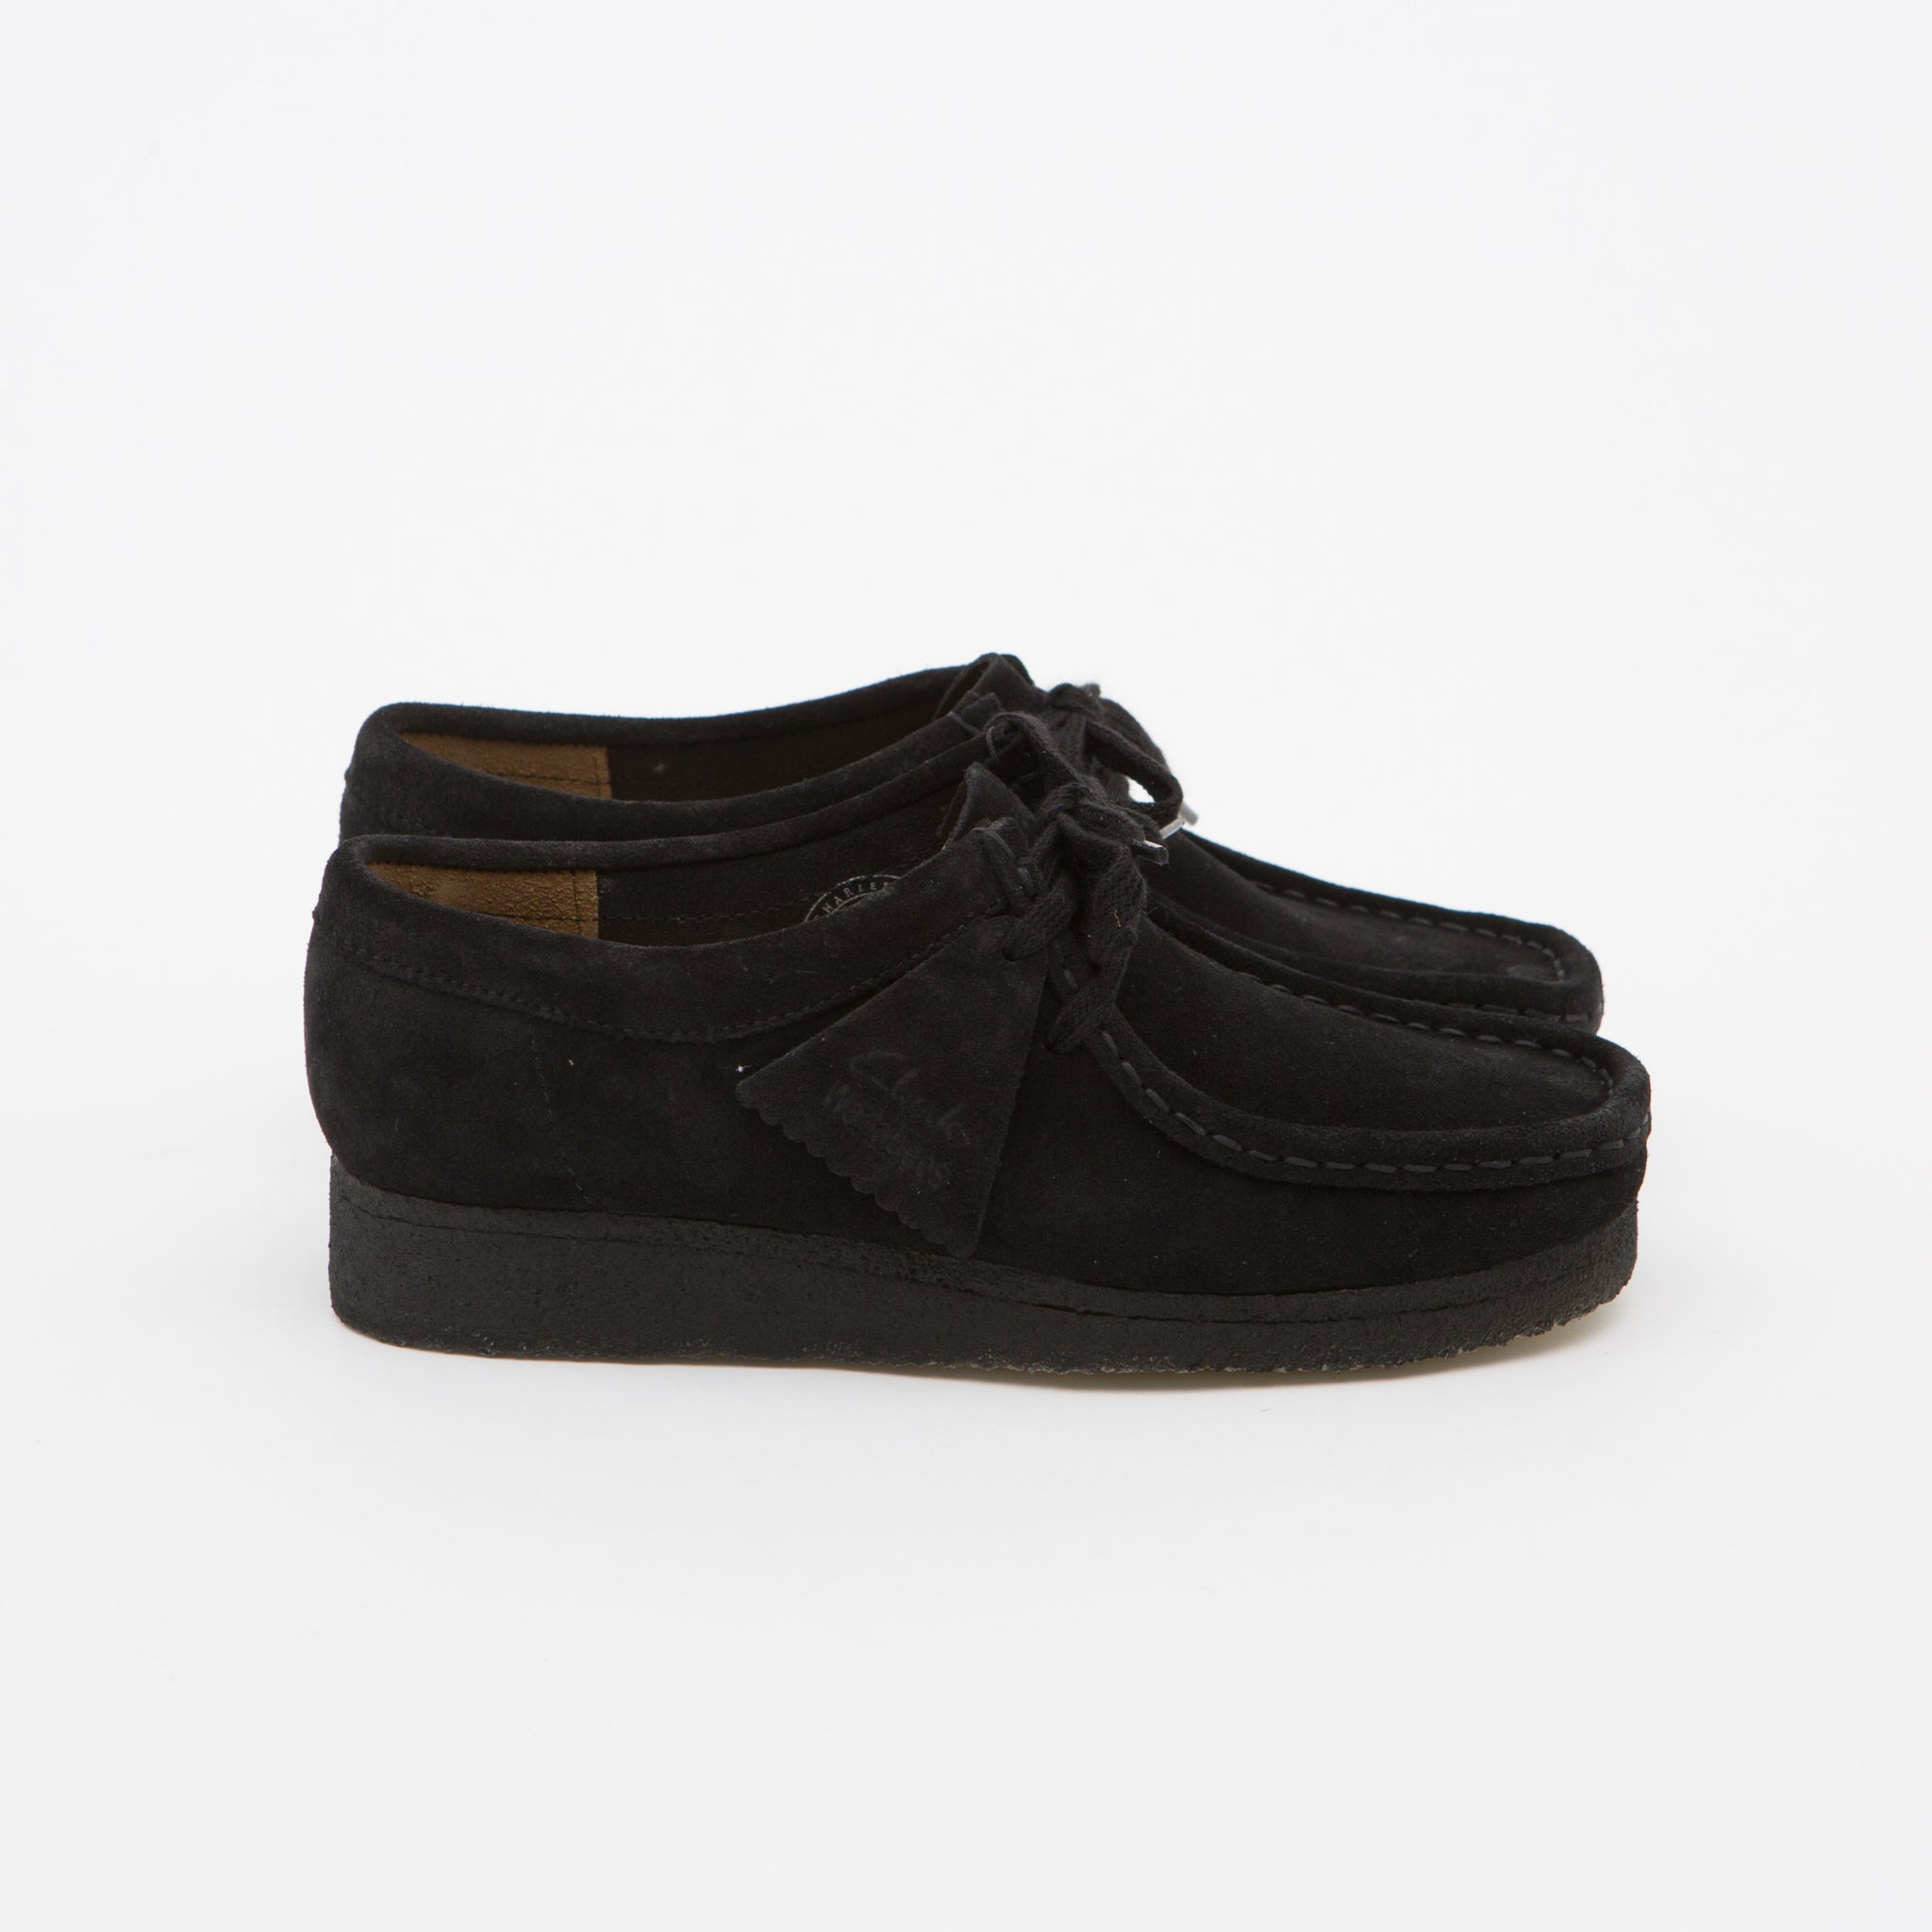 Clarks Originals Wallabee in Black